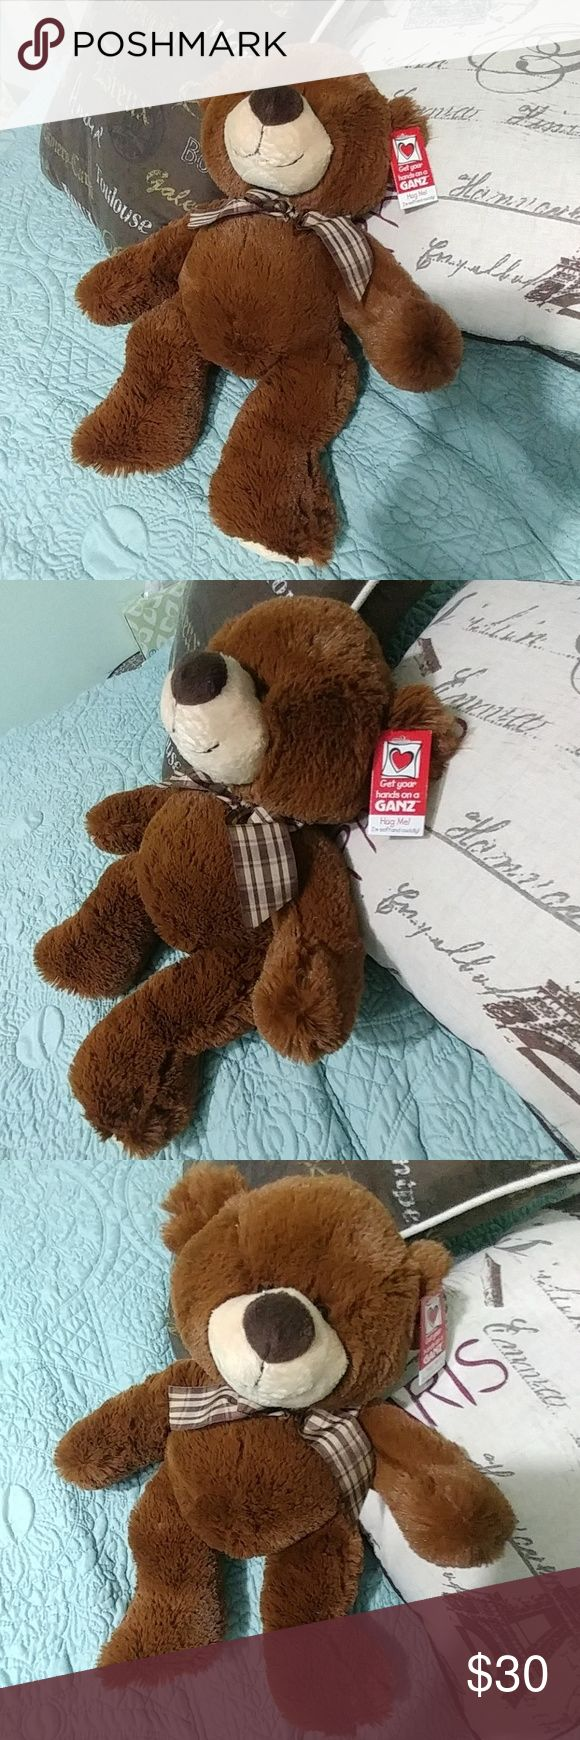 "18"" extra plush brown teddy bear with tags New with tags. Is the softest teddy bear I've personally felt. Extra plush and soft! Other"